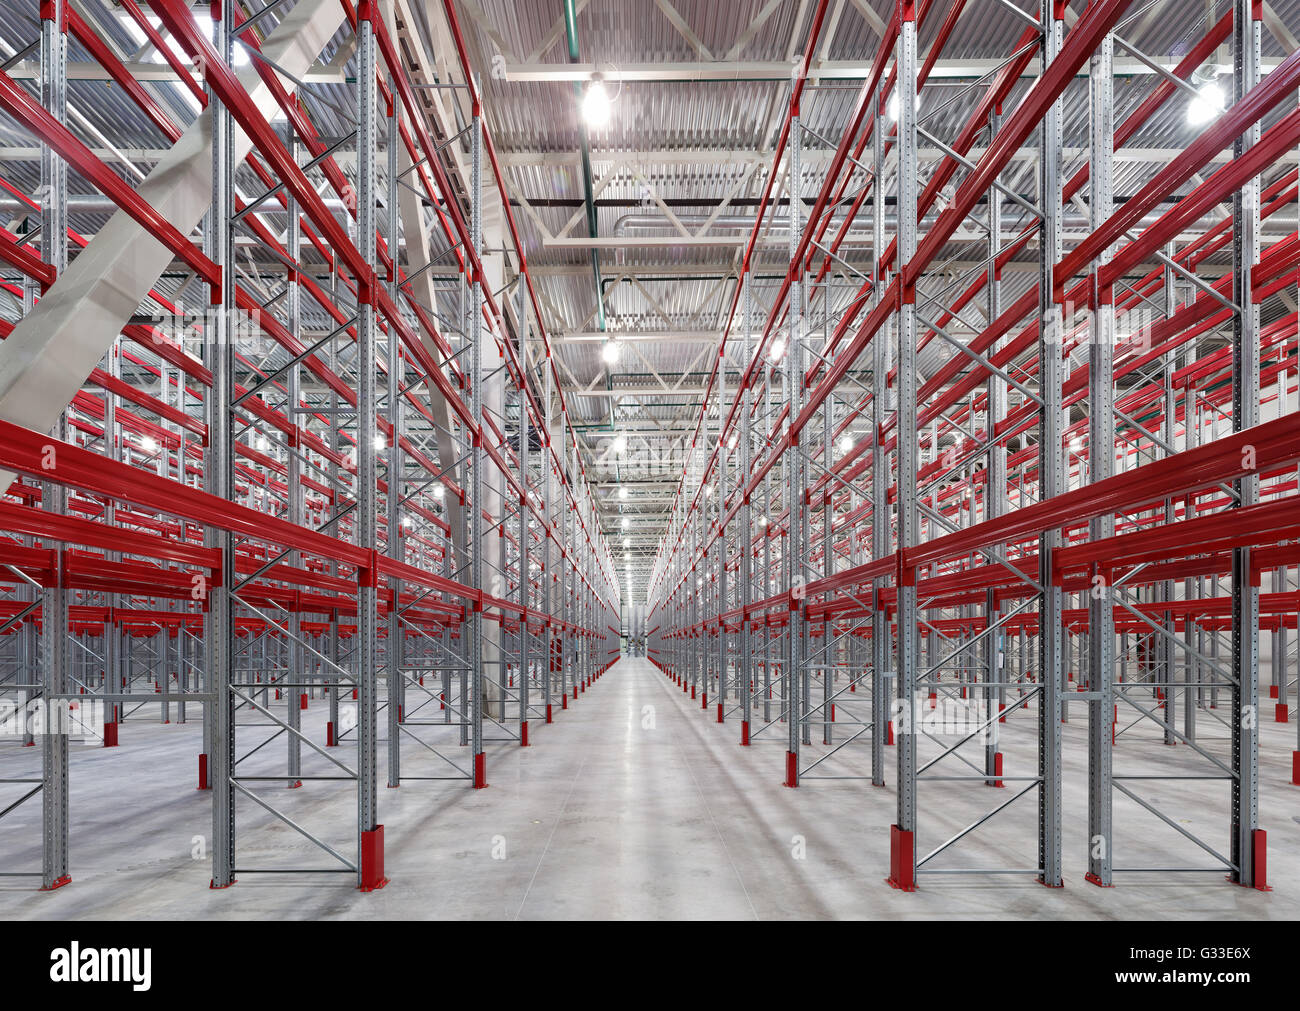 Industrial Racks Pallets Shelves In Huge Empty Warehouse